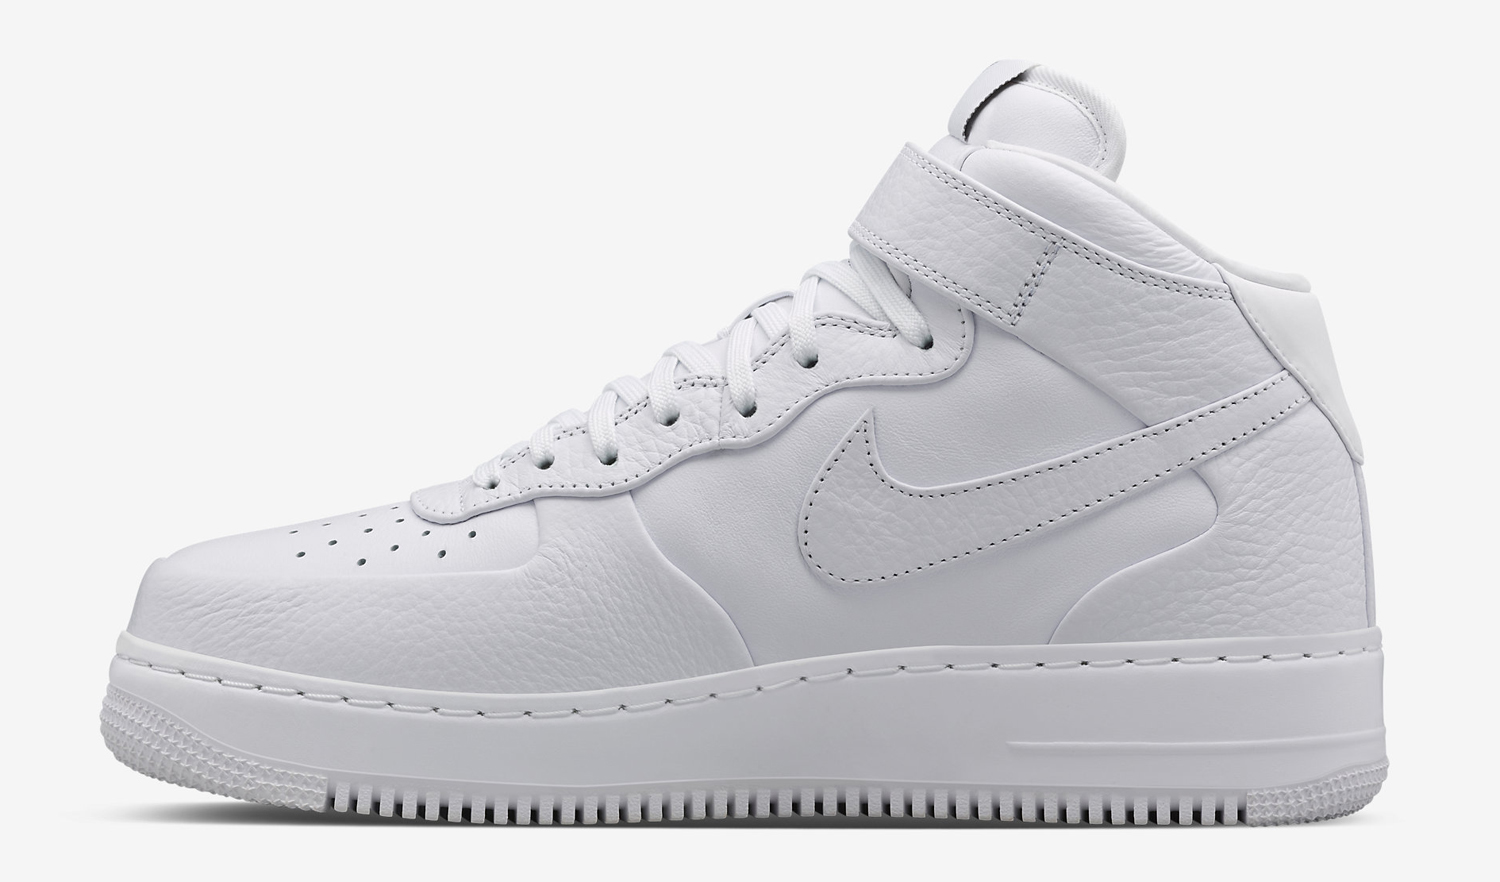 nikelab-air-force-1-mid-white-04